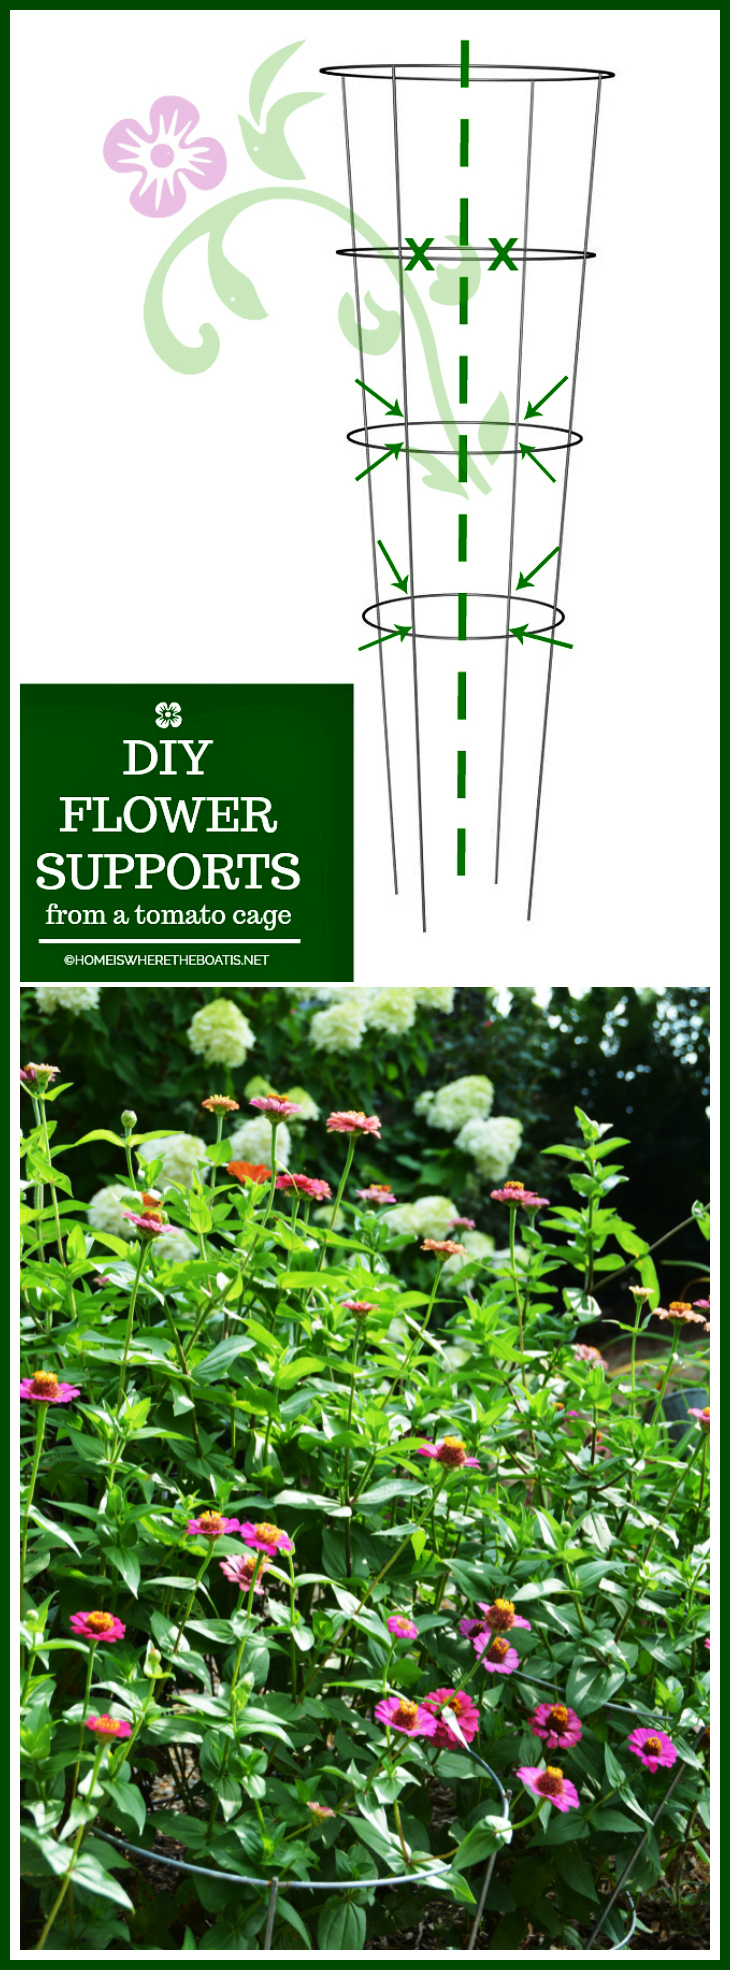 DIY Flower Supports from a Tomato Cage   ©homeiswheretheboatis.net #flowers #garden #DIY #tomatocage #hack